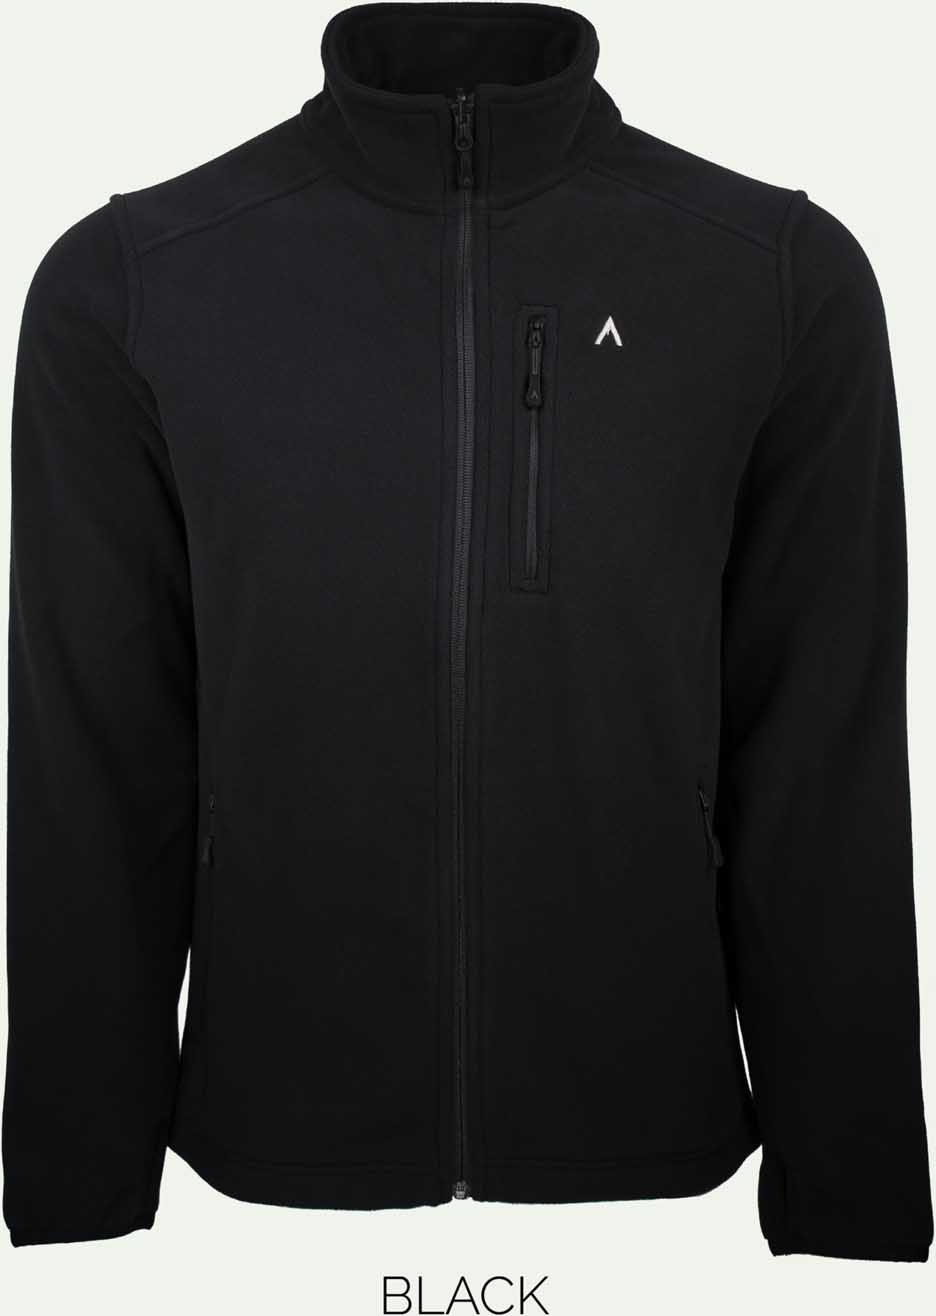 image terracea-landing-fleece-jacket-jpg